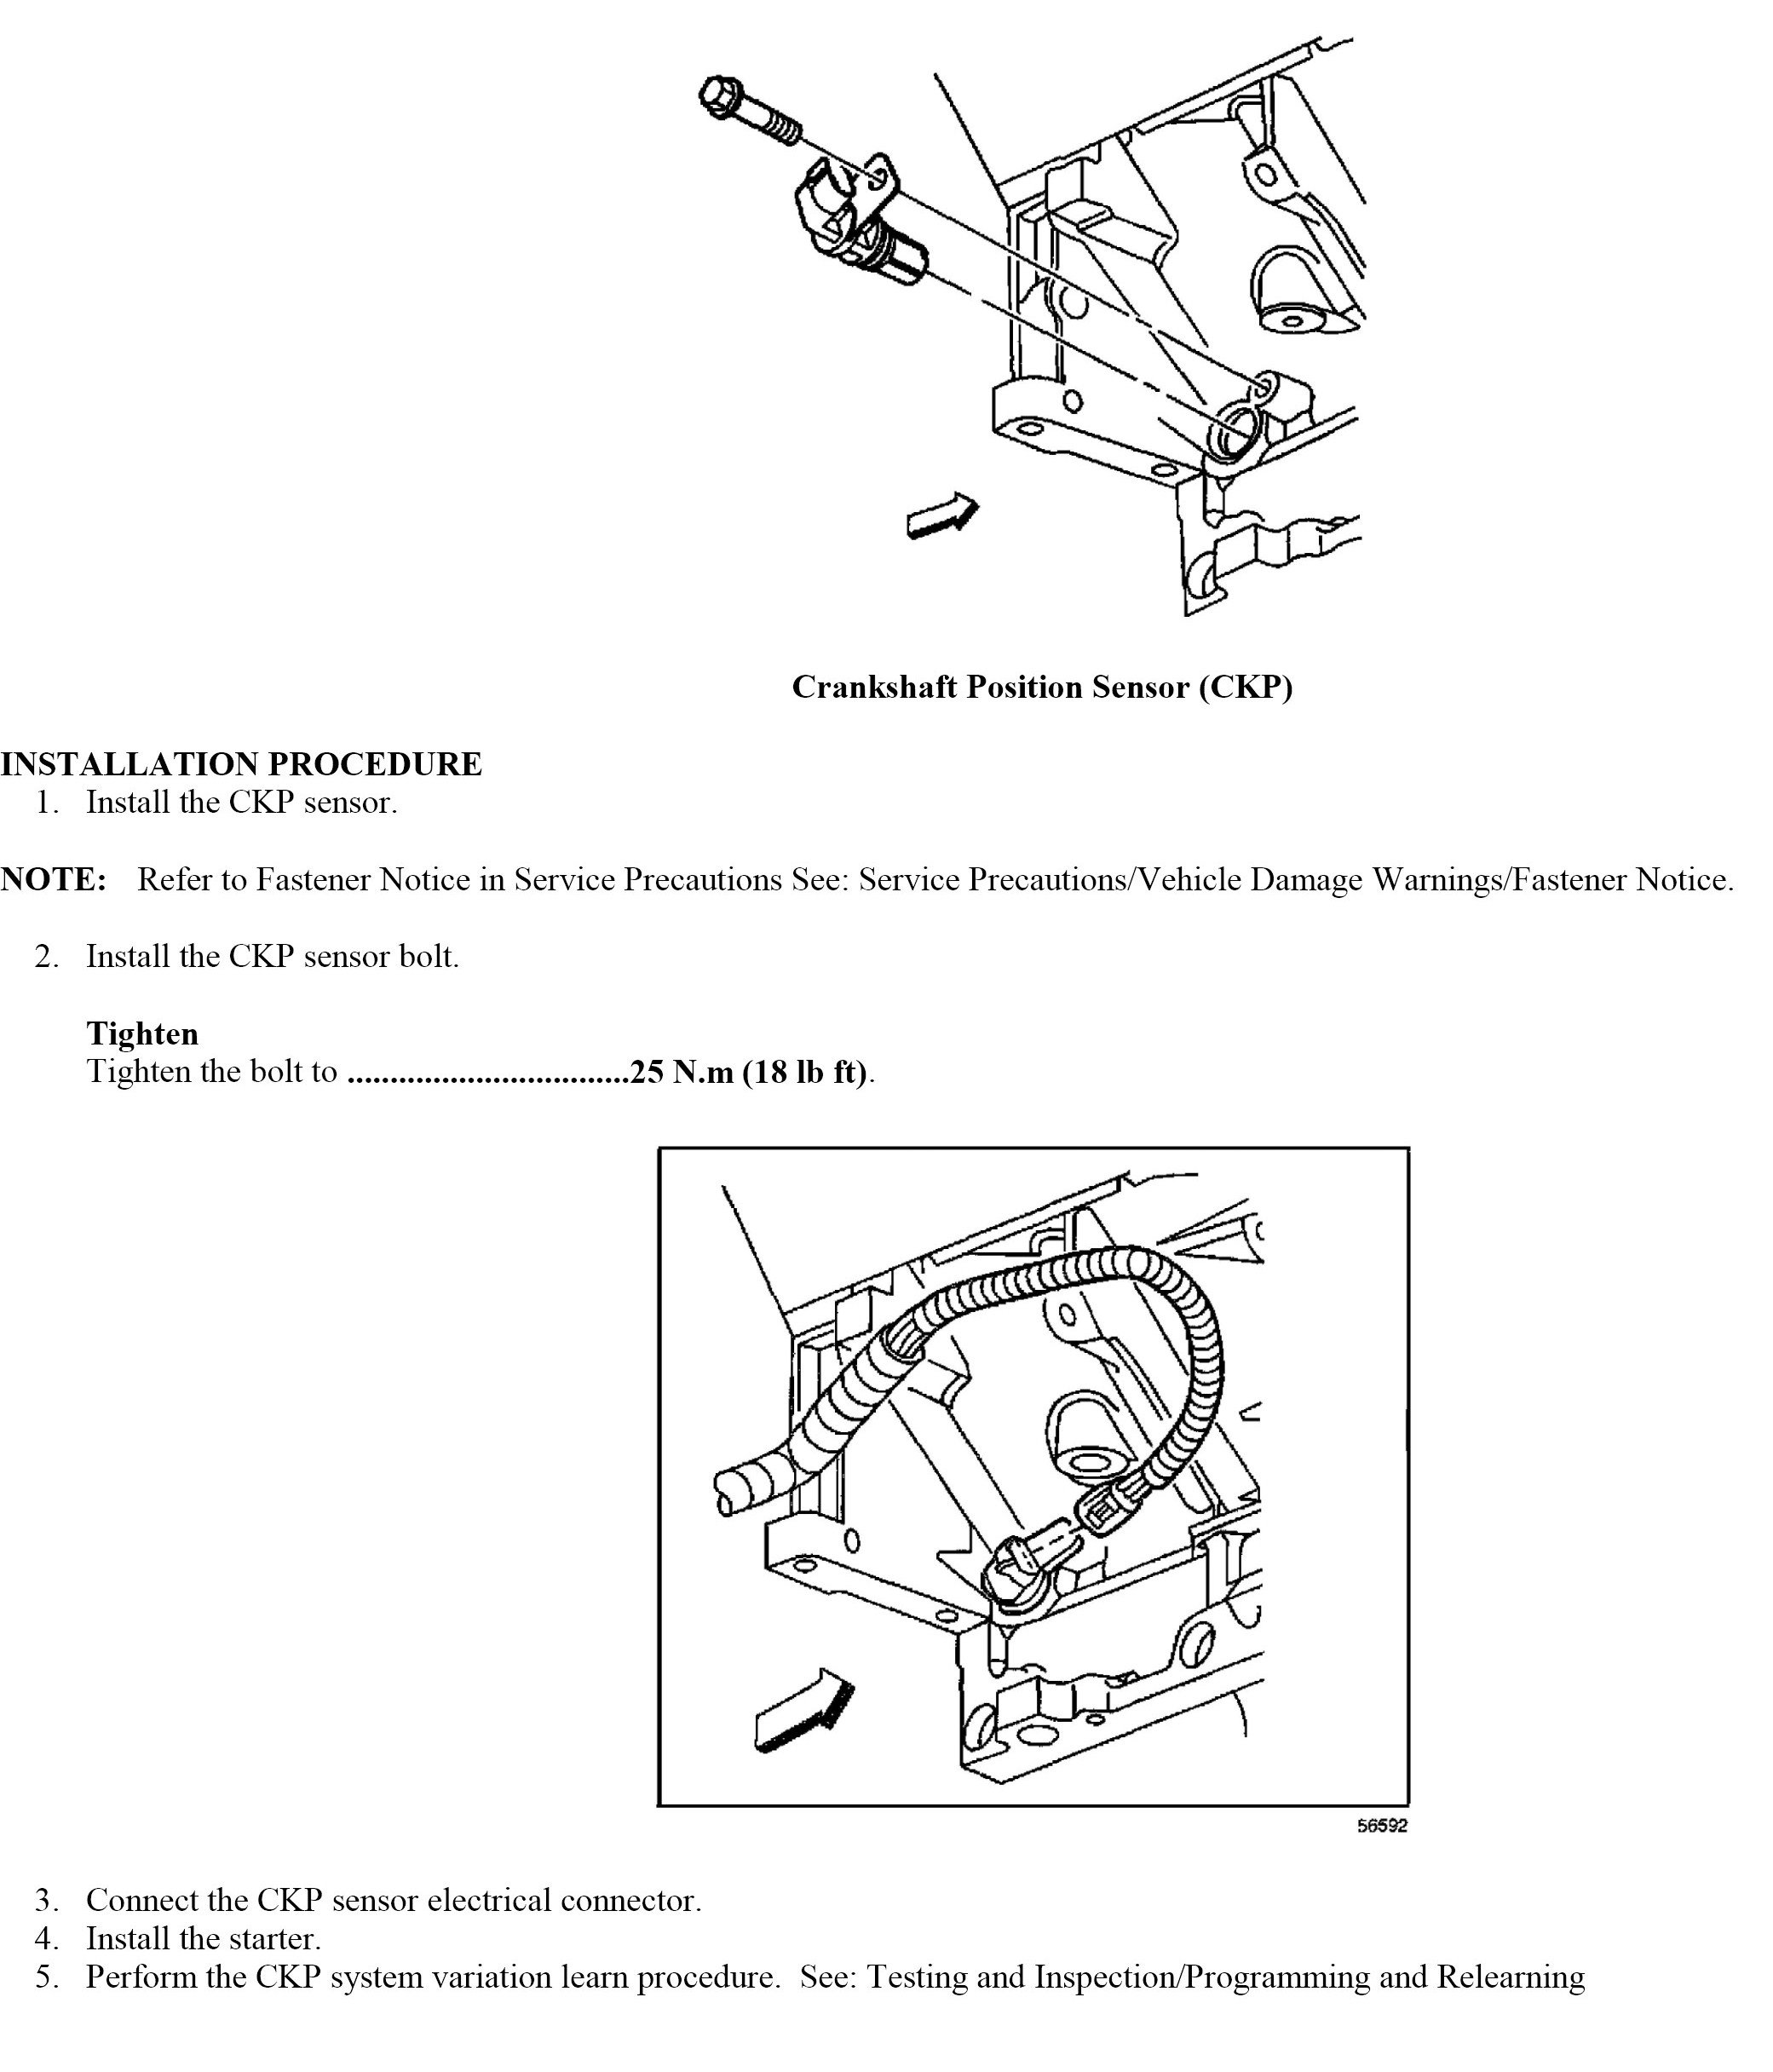 Vct Solenoid Wiring Diagram 2006 Ford Expedition on 06 trailblazer resistor replacement